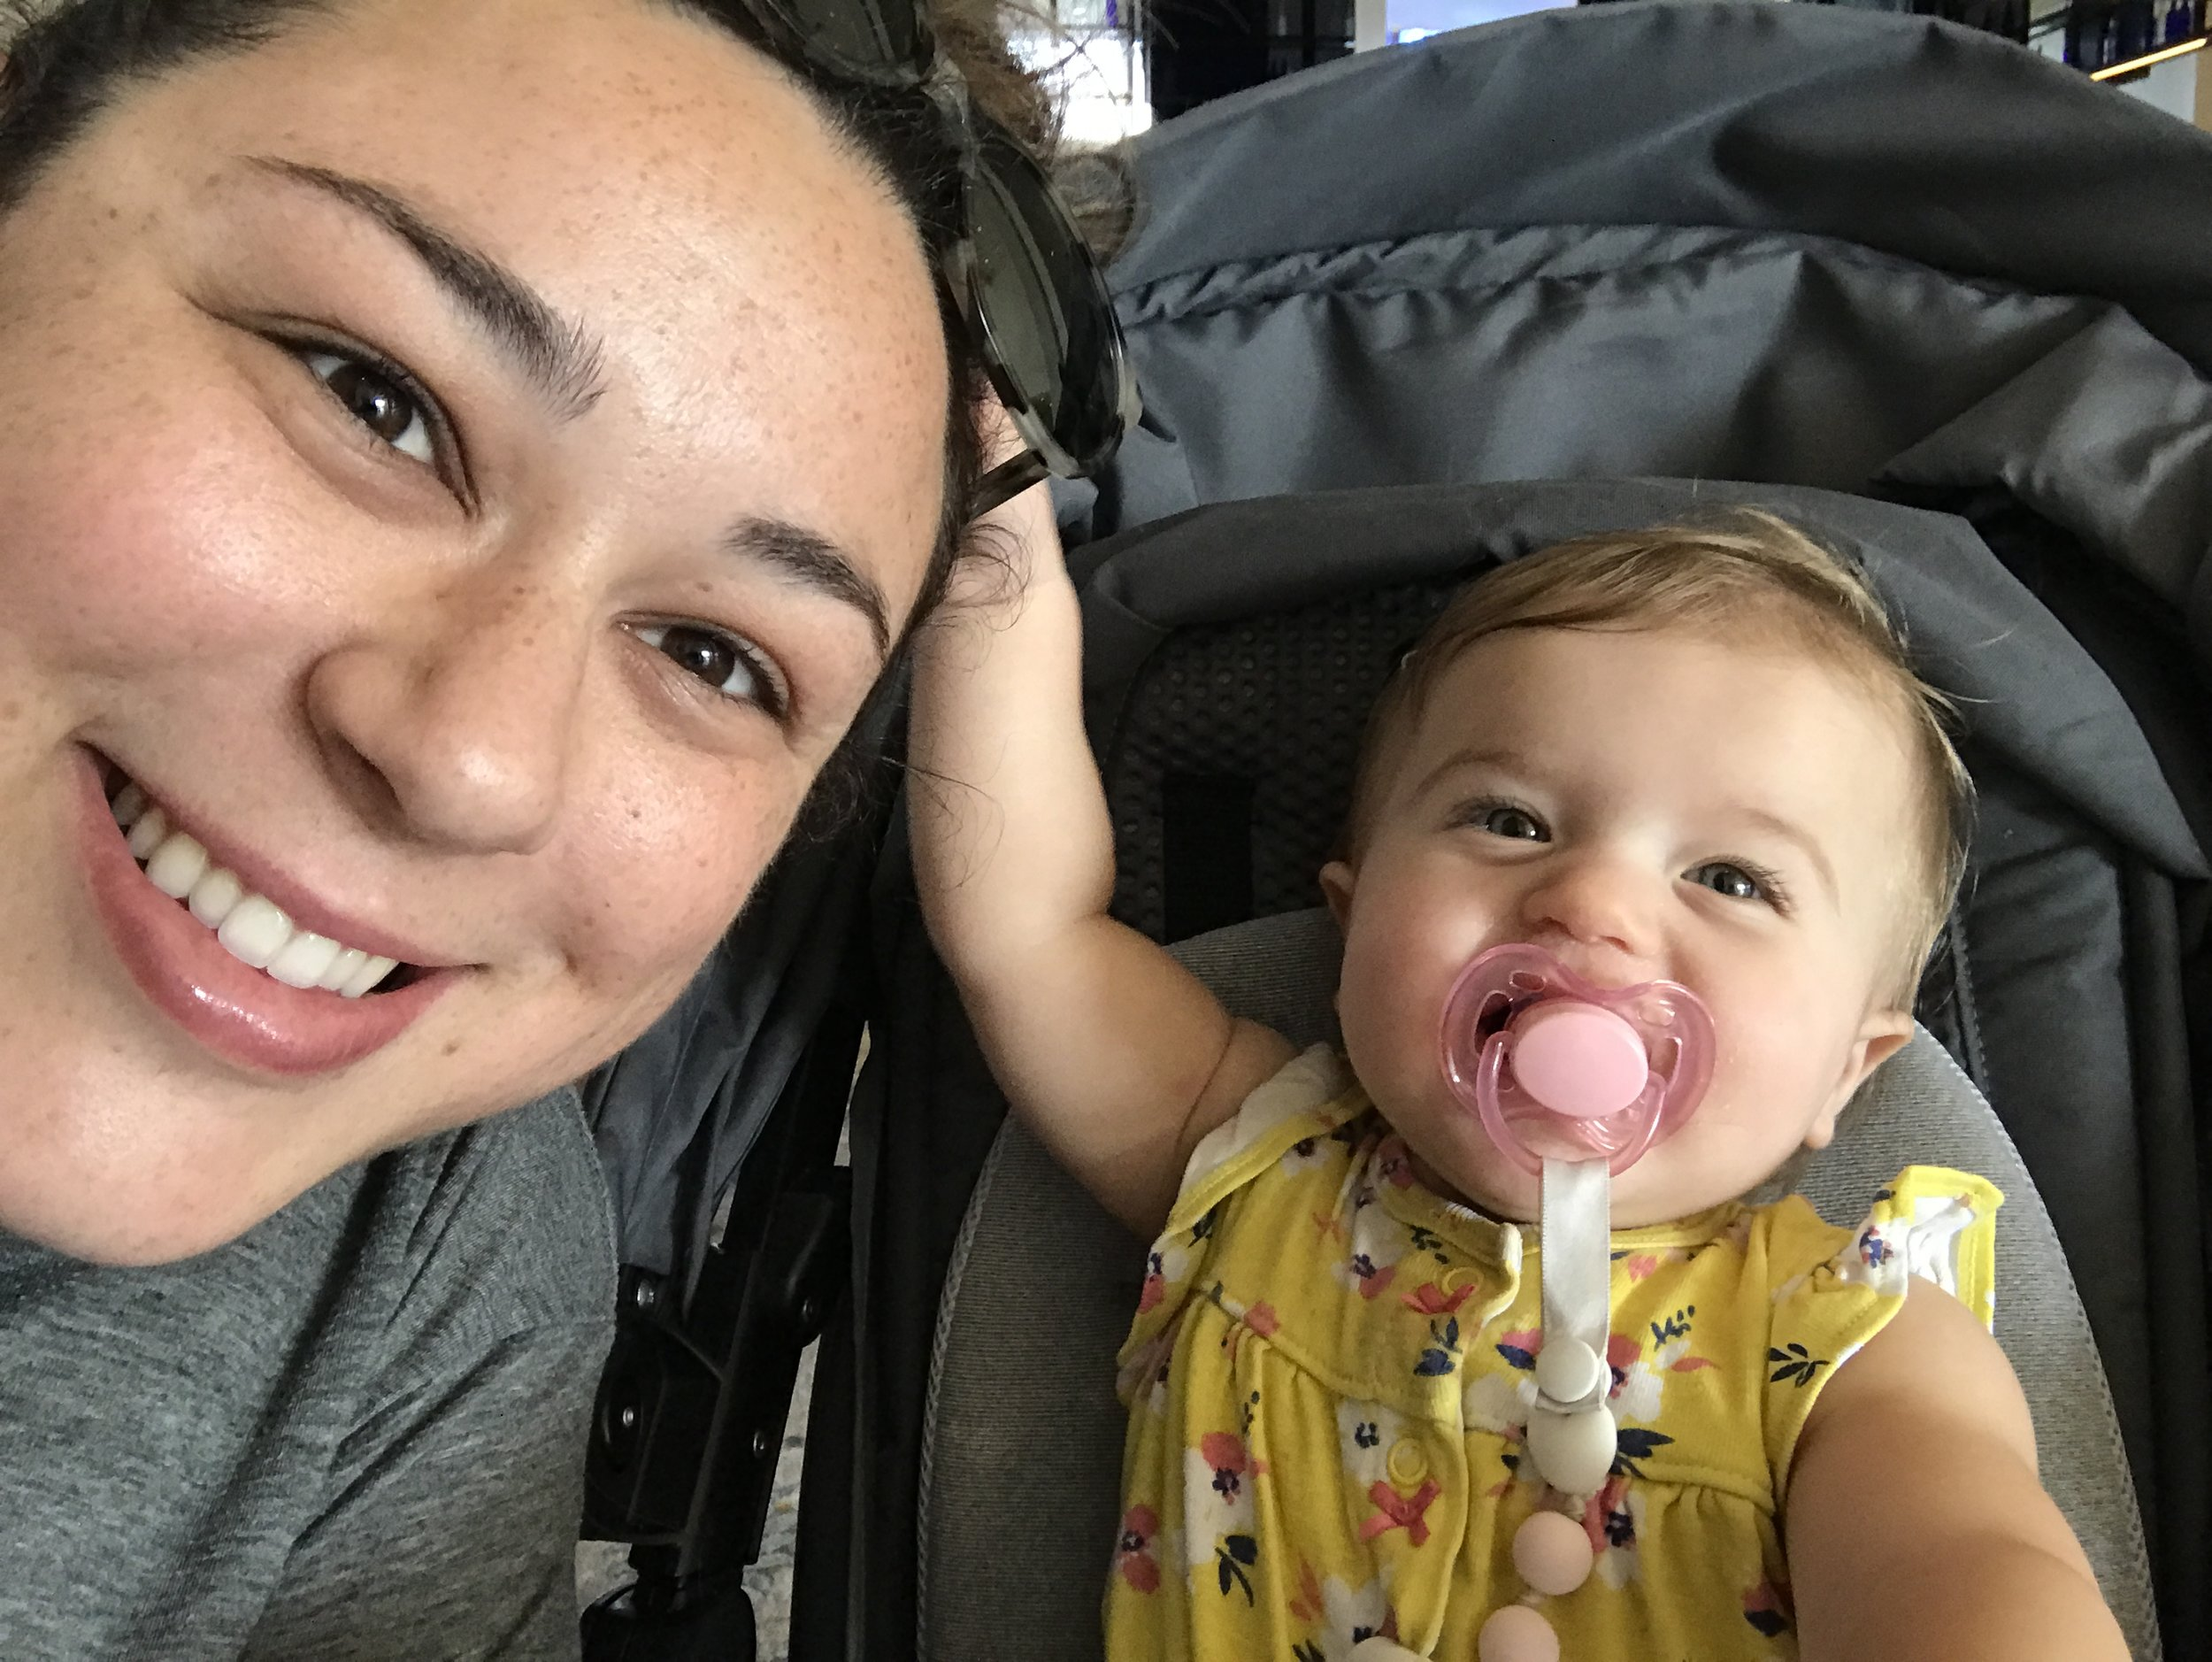 Enjoying the start of our vacation taking selfies!